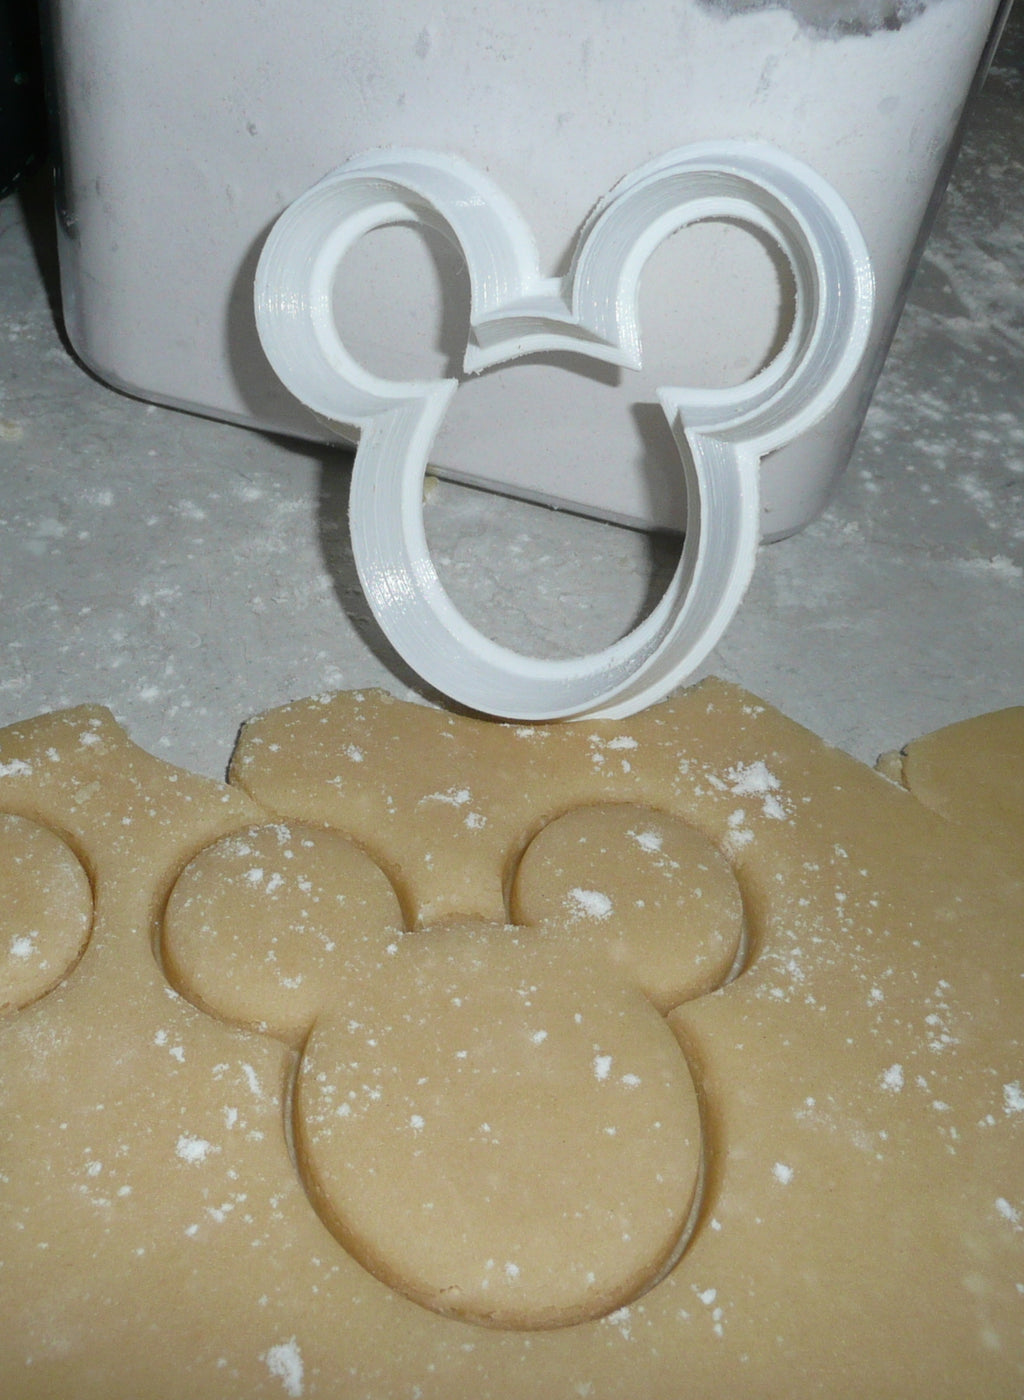 Mickey Mouse Disney Cookie Cutter Baking Tool Special Occasion Made In USA PR307